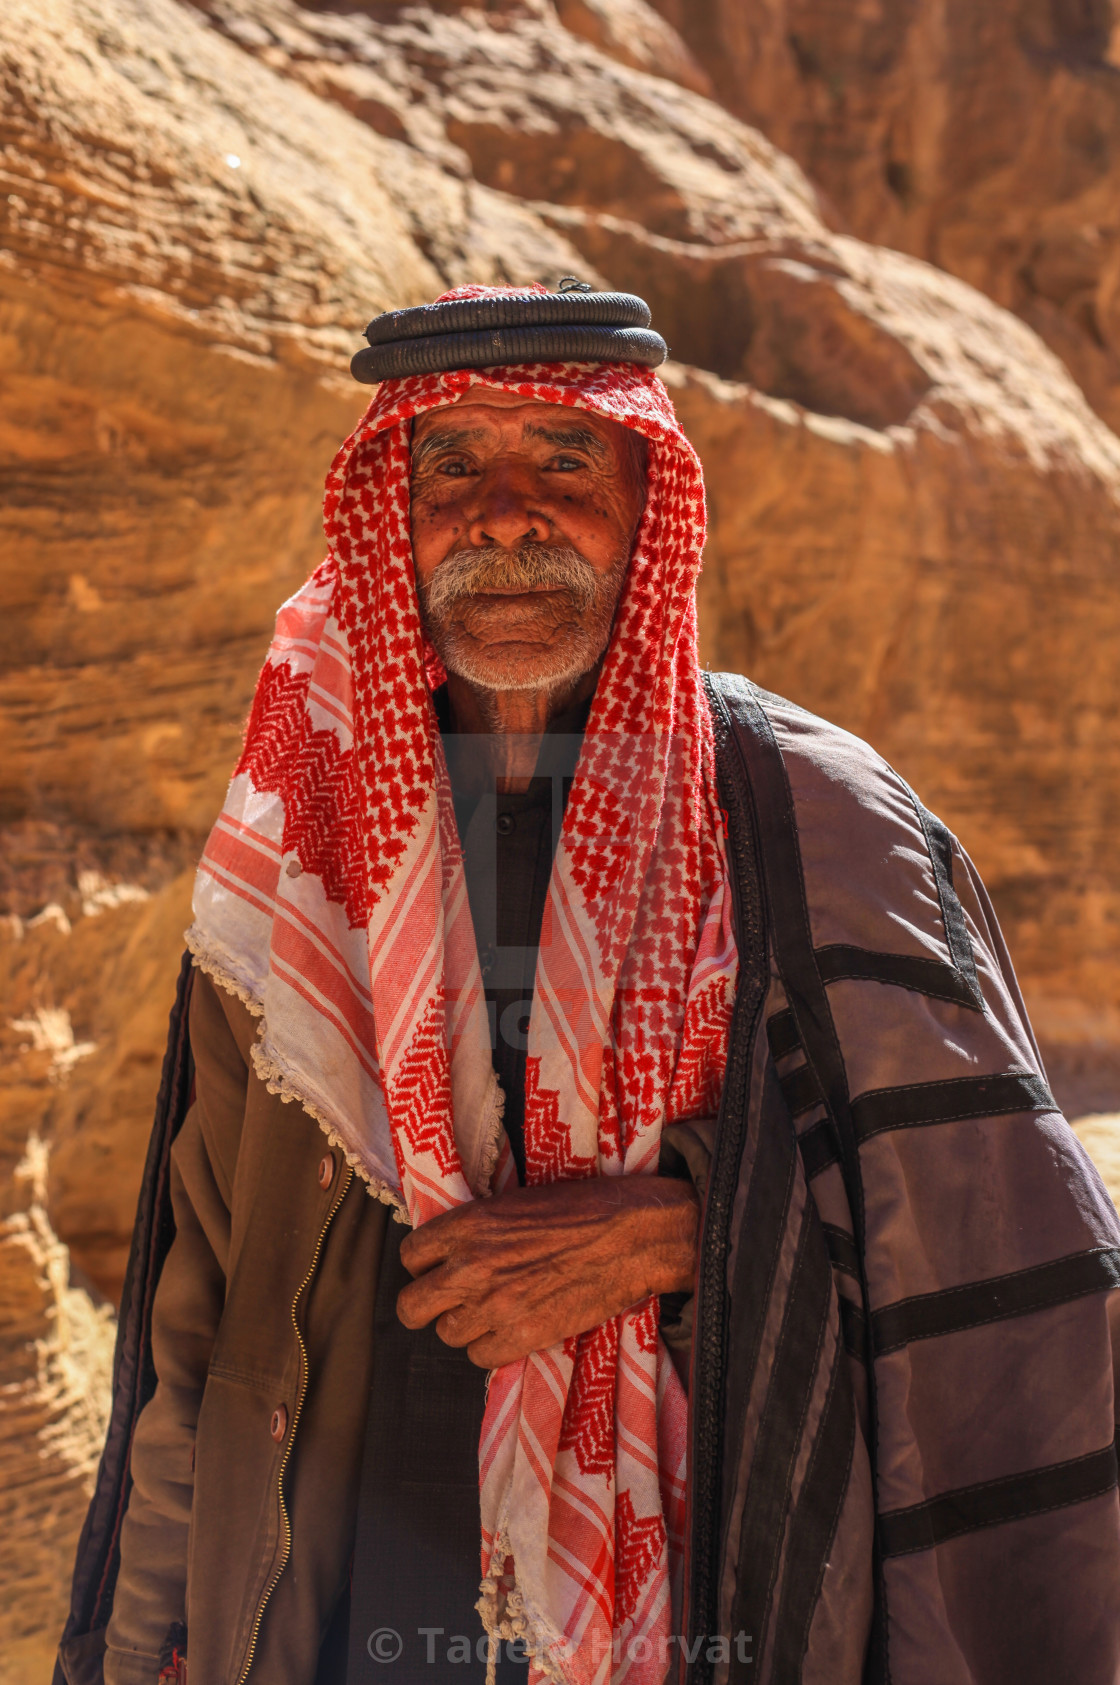 """Bedouin man in a traditional dress"" stock image"